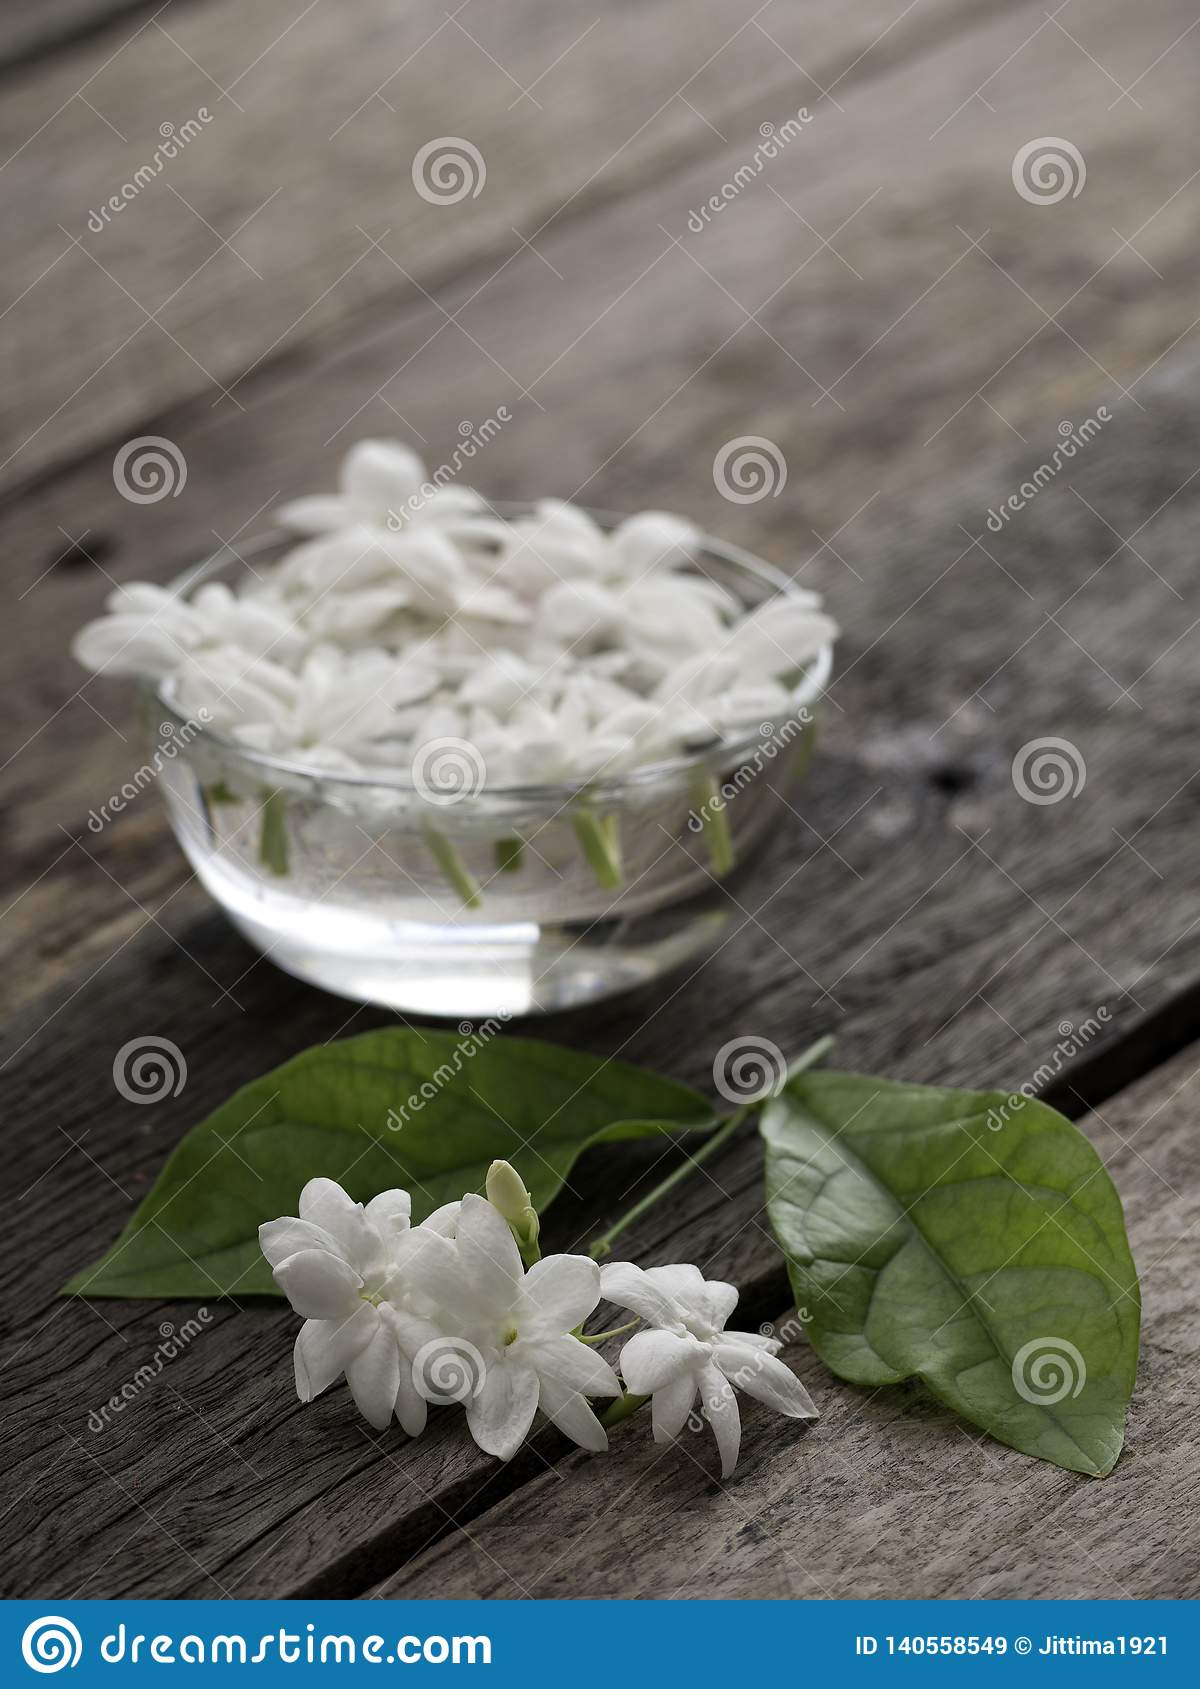 Jasmine floating in clear glass on wooden background